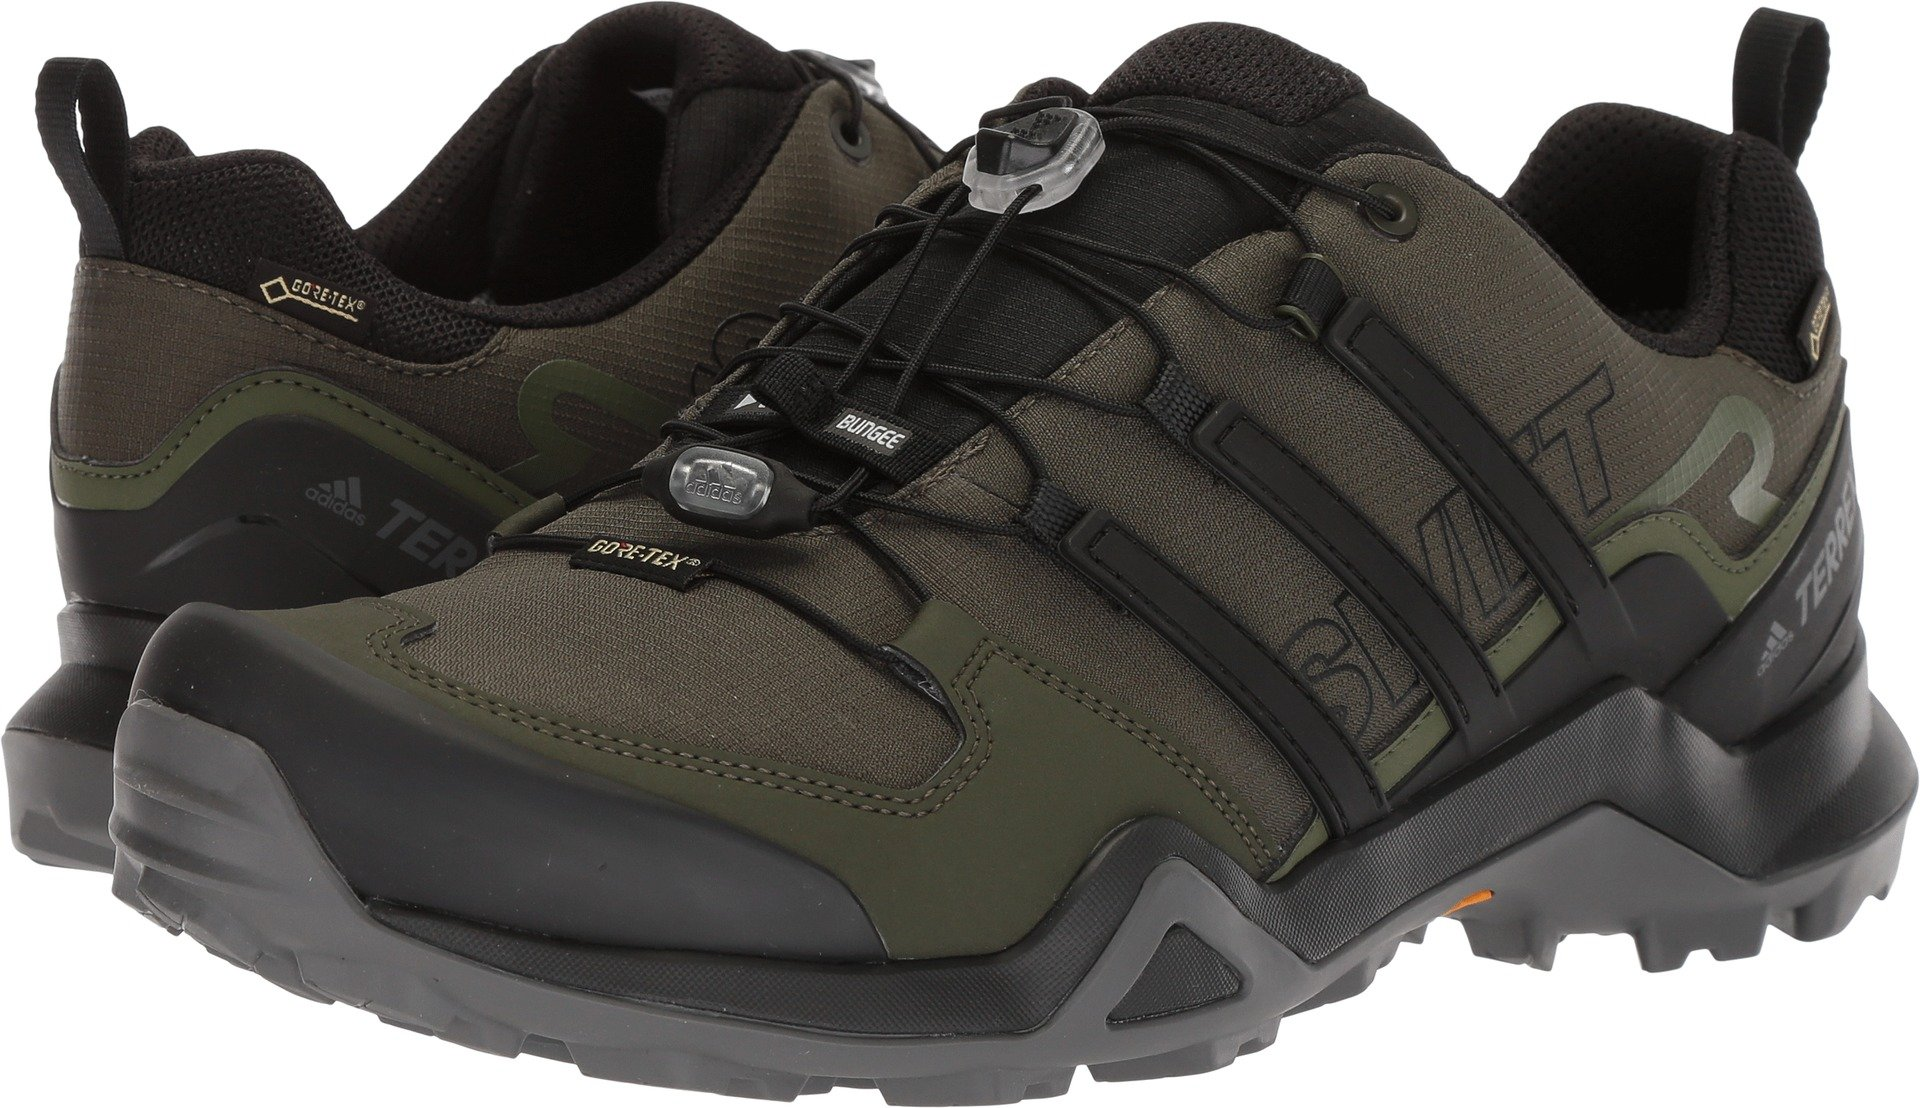 adidas outdoor Terrex Swift R2 GTX Mens Hiking Boot Night Cargo/Black/Base Green, Size 12